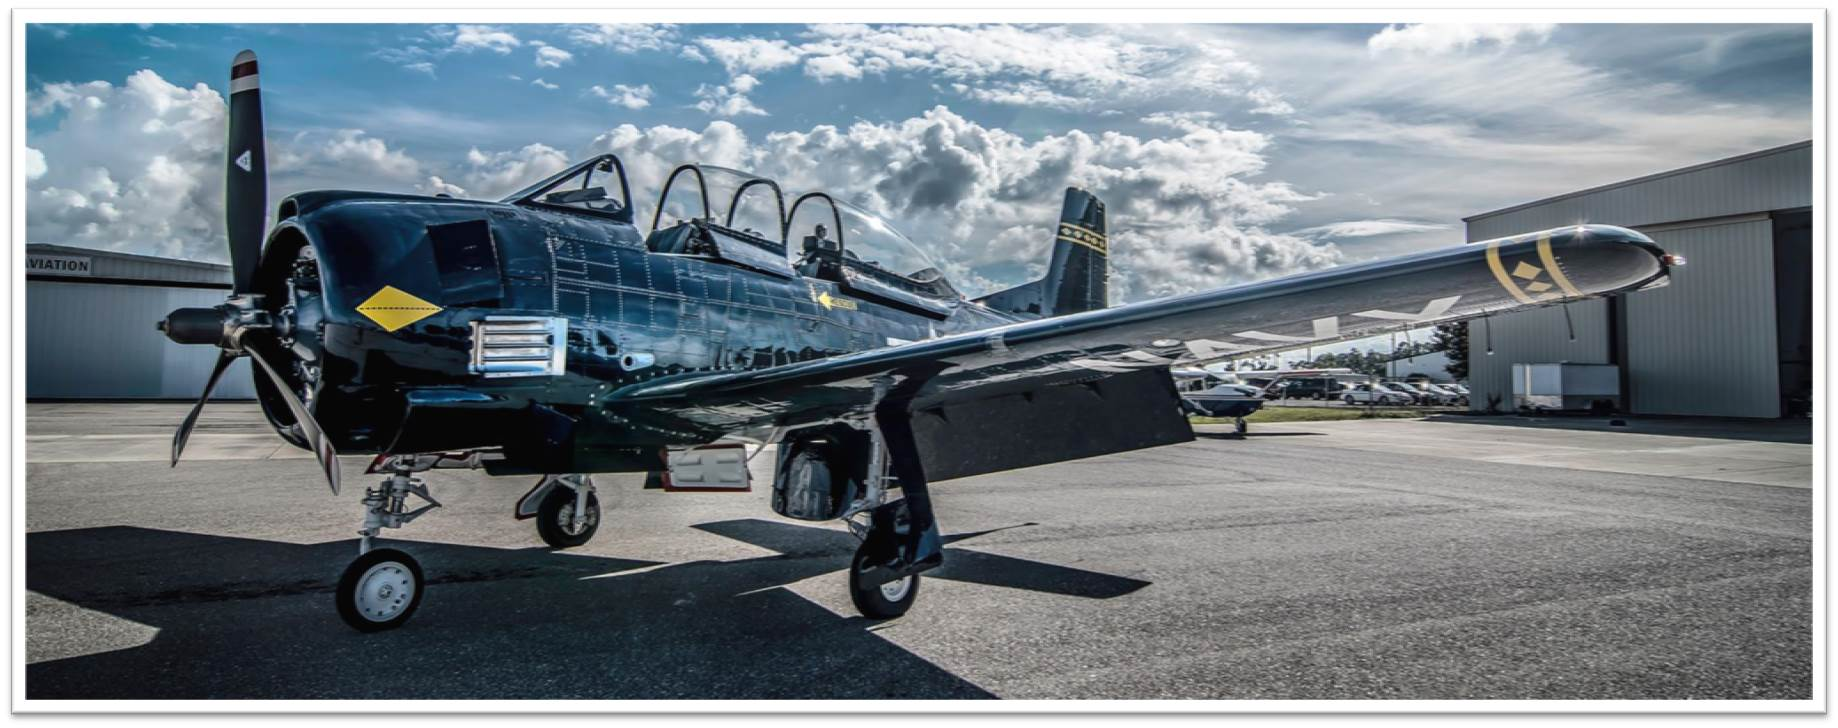 T28 taken by Peace River Photography at APG Avionics